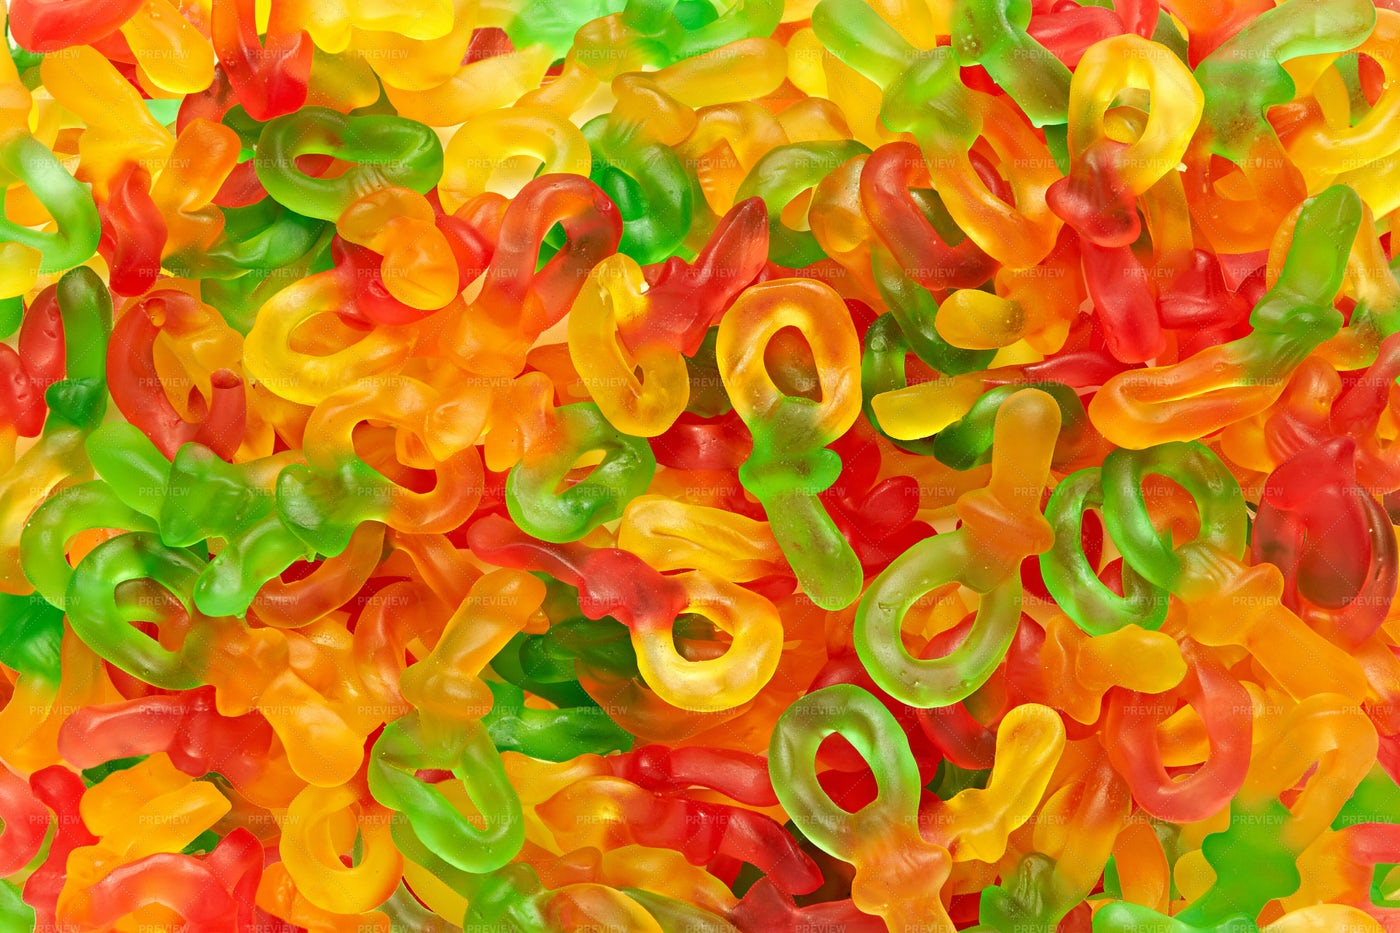 Colorful Jelly Sweets: Stock Photos